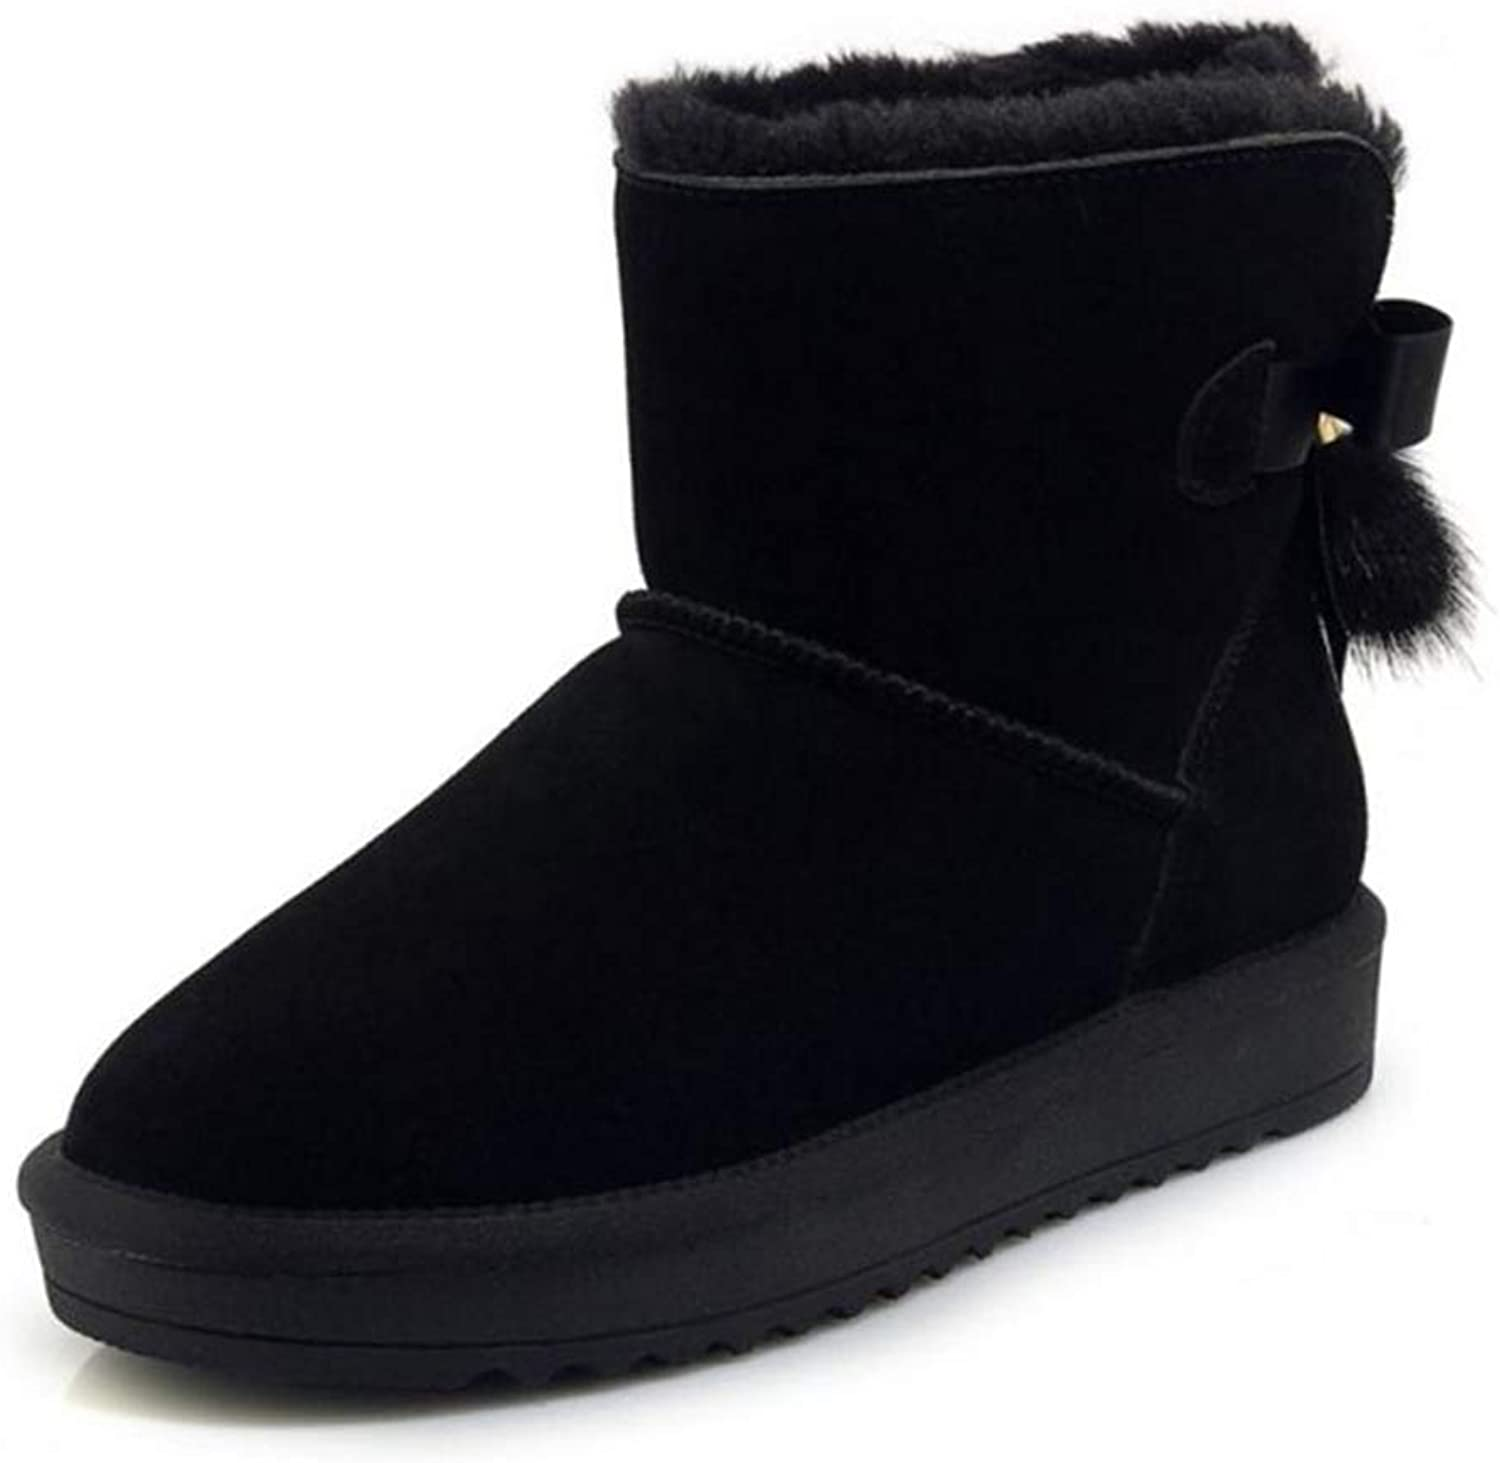 T-JULY Women's Winter Warm Ankle Snow Boots Real Leather Plush Fur Flats Round Toe shoes